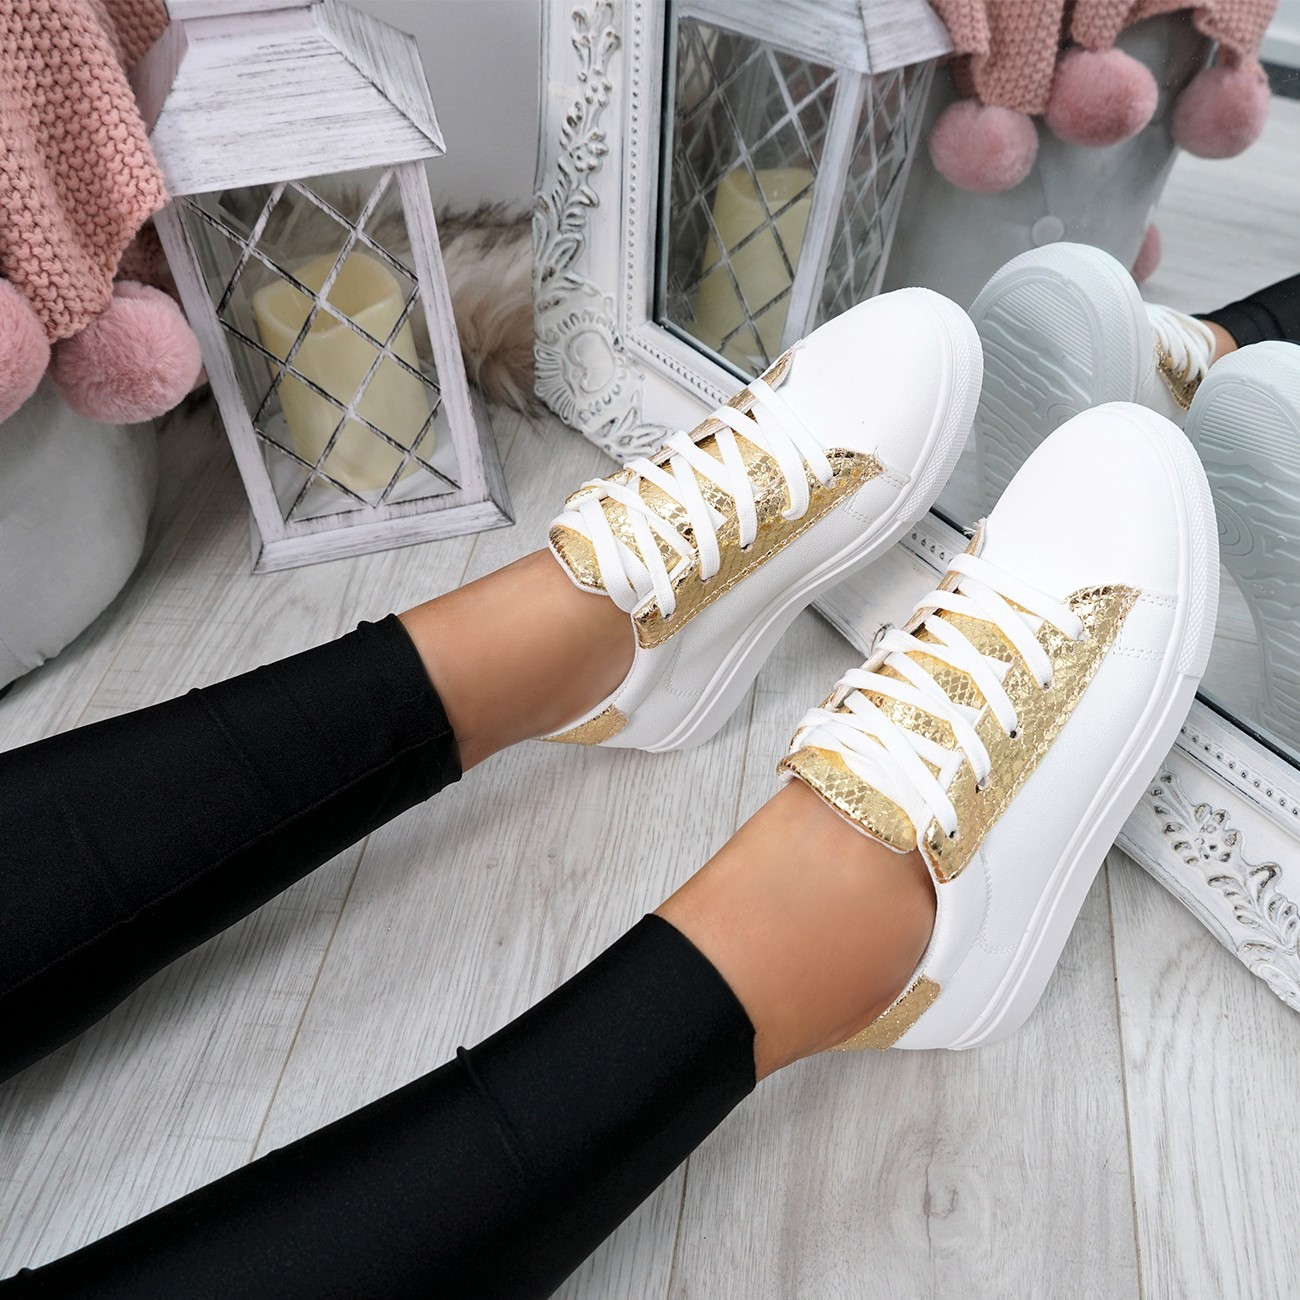 WOMENS-LADIES-SNAKE-SKIN-GLITTER-LACE-UP-TRAINERS-PLIMSOLLS-SNEAKERS-SHOES thumbnail 12